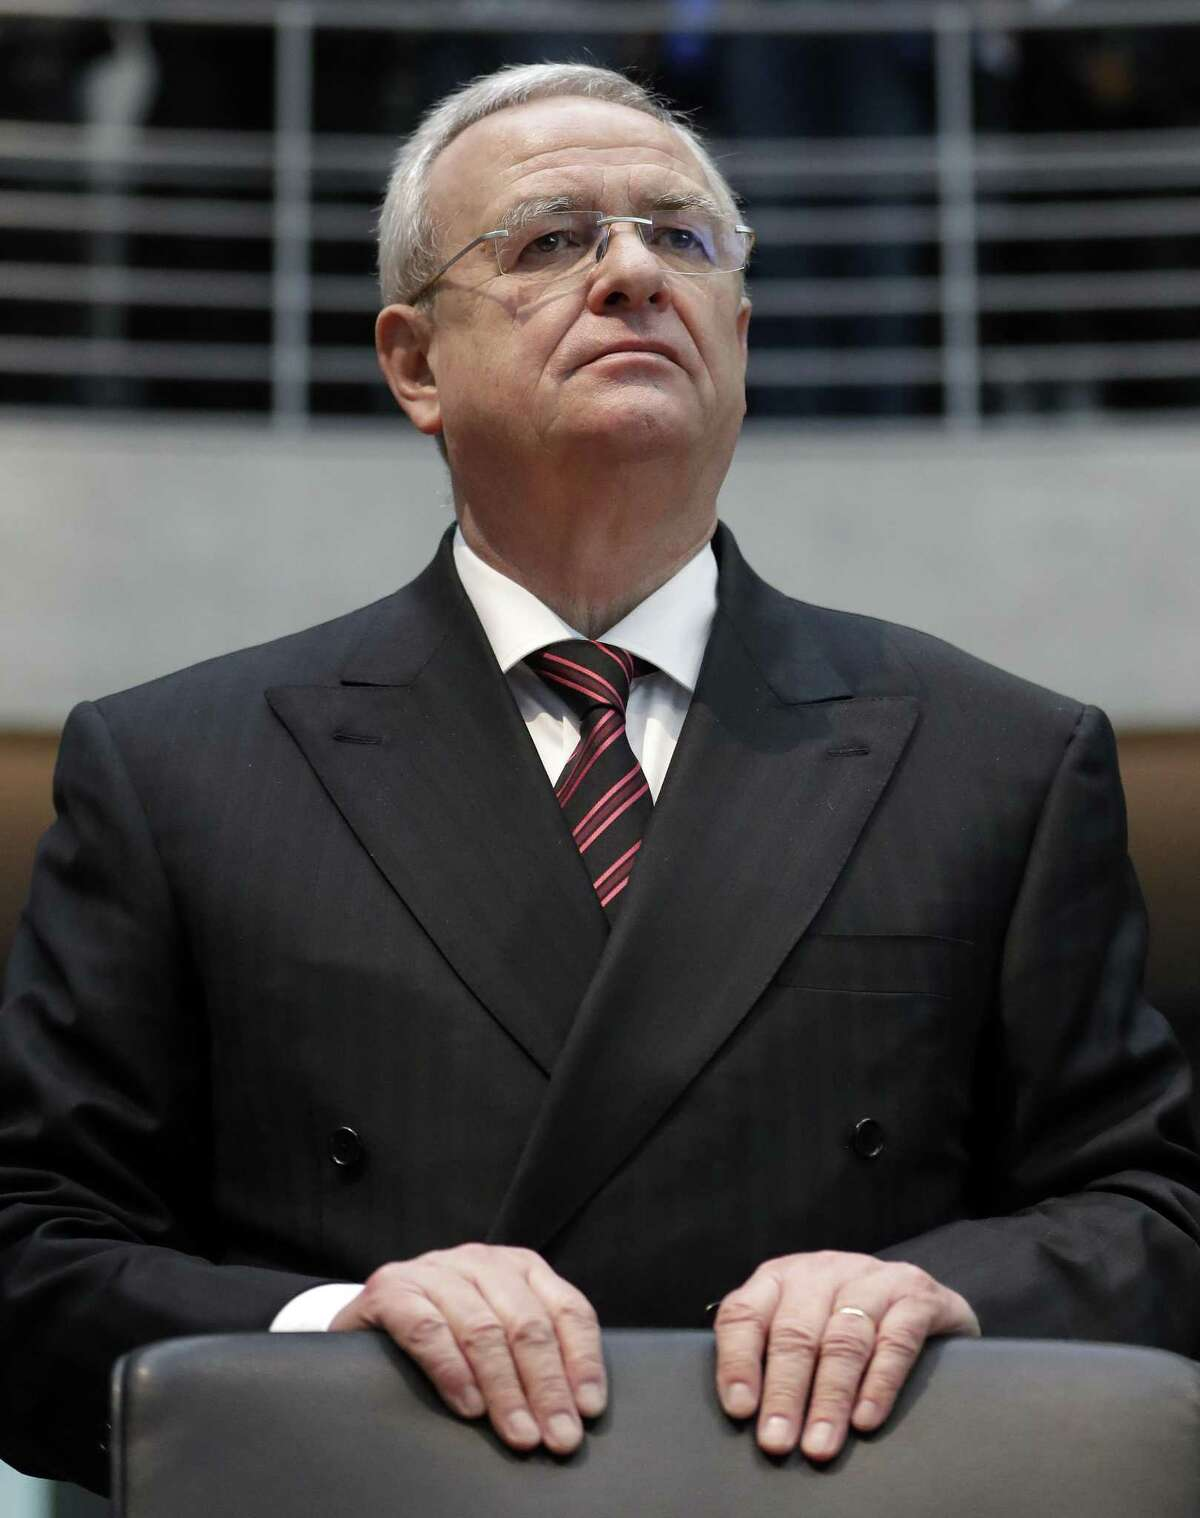 FILE - In this Jan. 19, 2017 file photo Martin Winterkorn, former CEO of the German car manufacturer 'Volkswagen', arrives for a questioning at an investigation committee of the German federal parliament in Berlin. A federal grand jury in Detroit has indicted former Volkswagen CEO Martin Winterkorn on charges stemming from the company's diesel emissions cheating scandal in a plot that prosecutors allege reached the top of the world's largest automaker. (AP Photo/Michael Sohn, file)